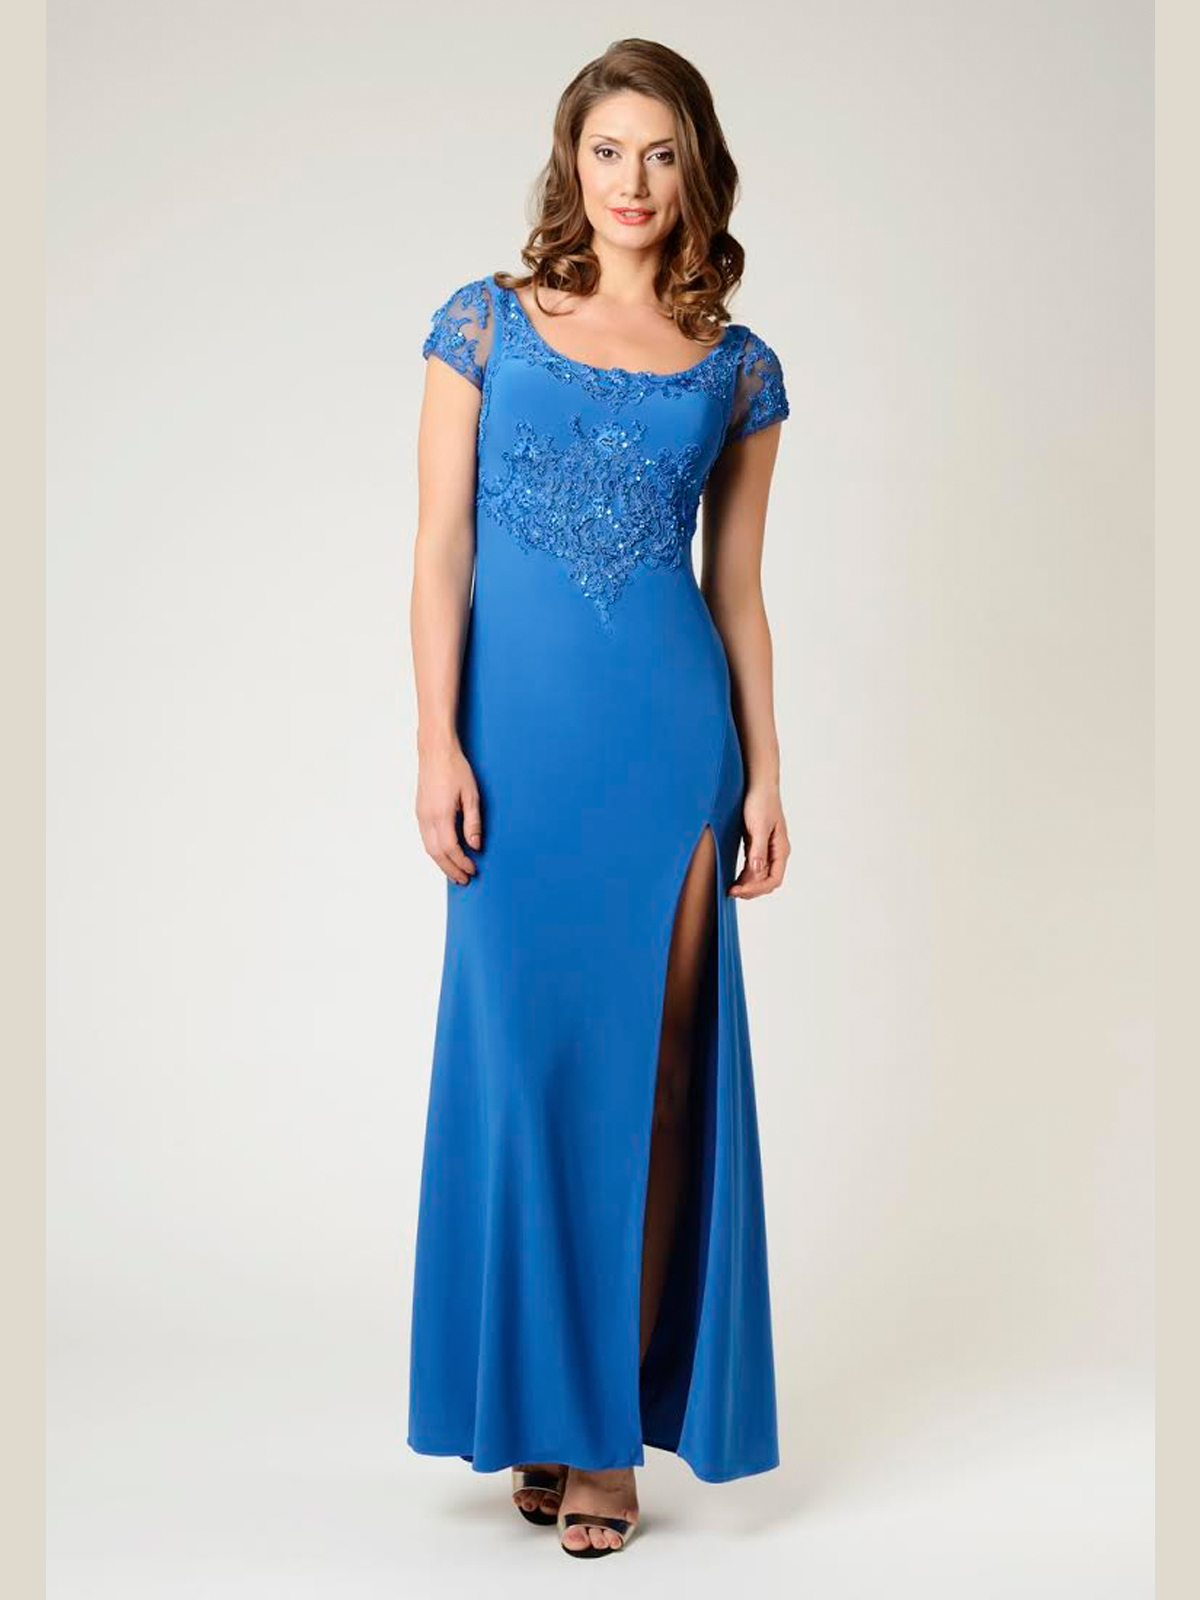 Vintage prom dresses dallas cocktail dresses 2016 for Wedding dresses in dallas tx for cheap